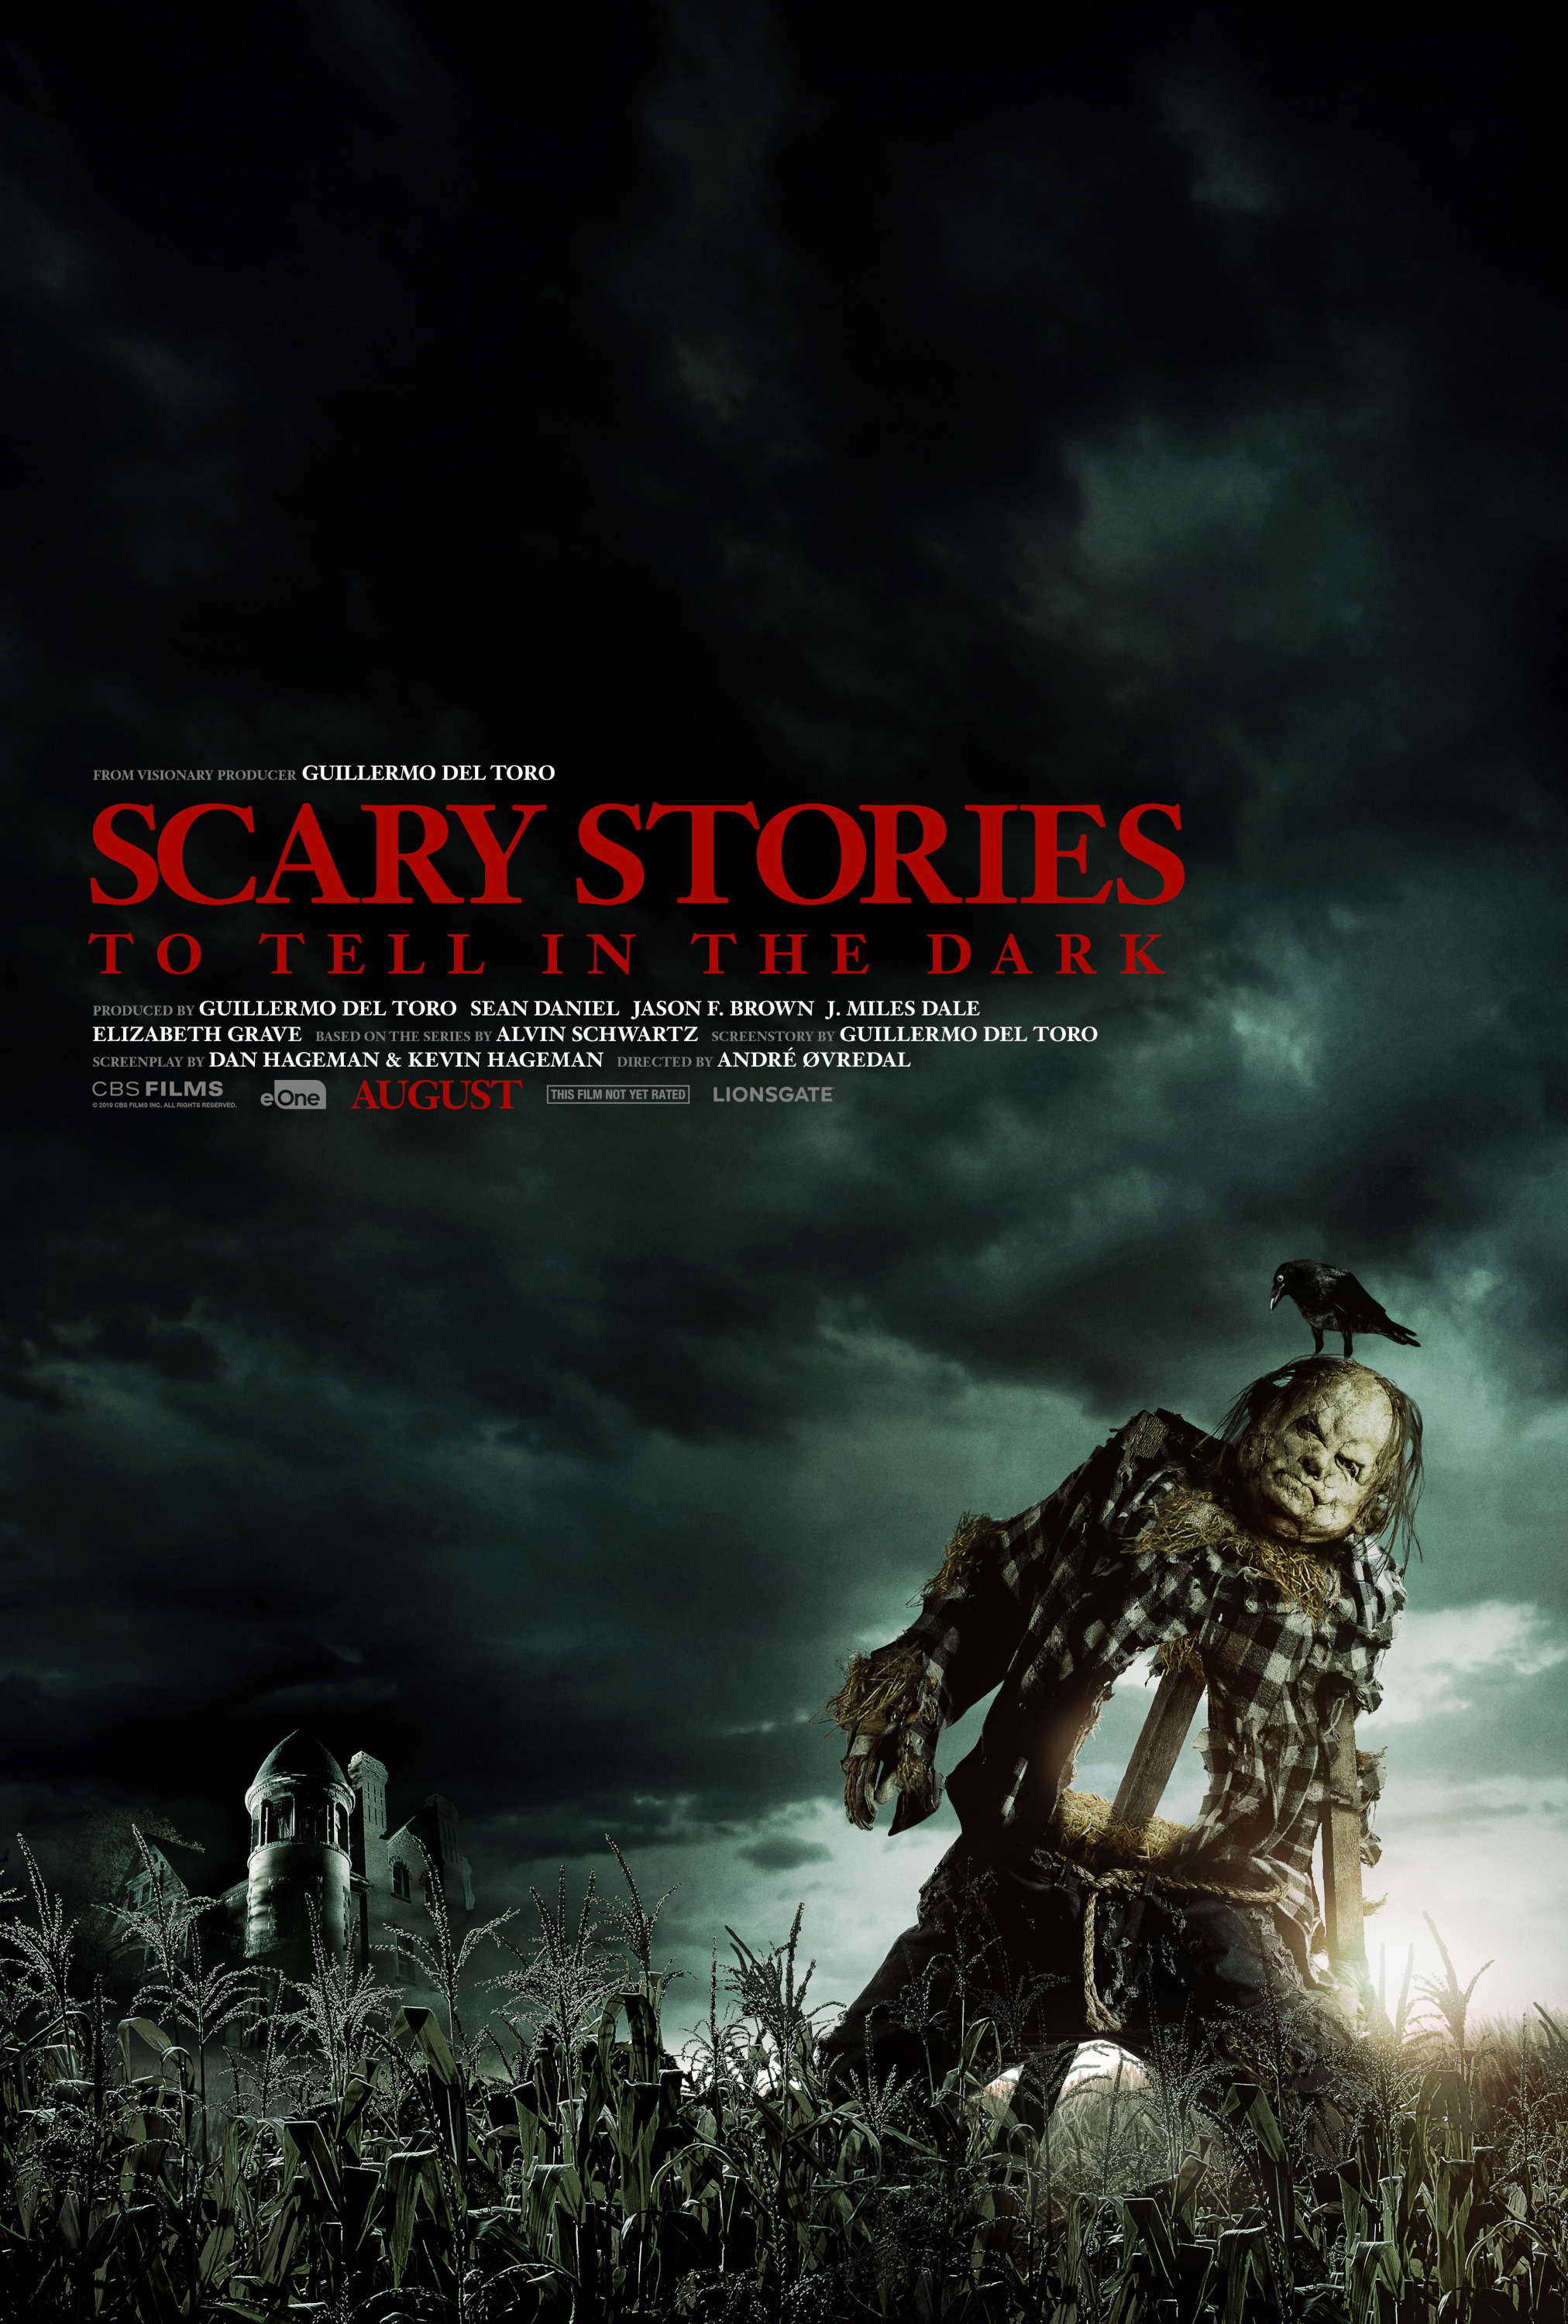 Scary Stories To Tell In The Dark film review: time to get spooky